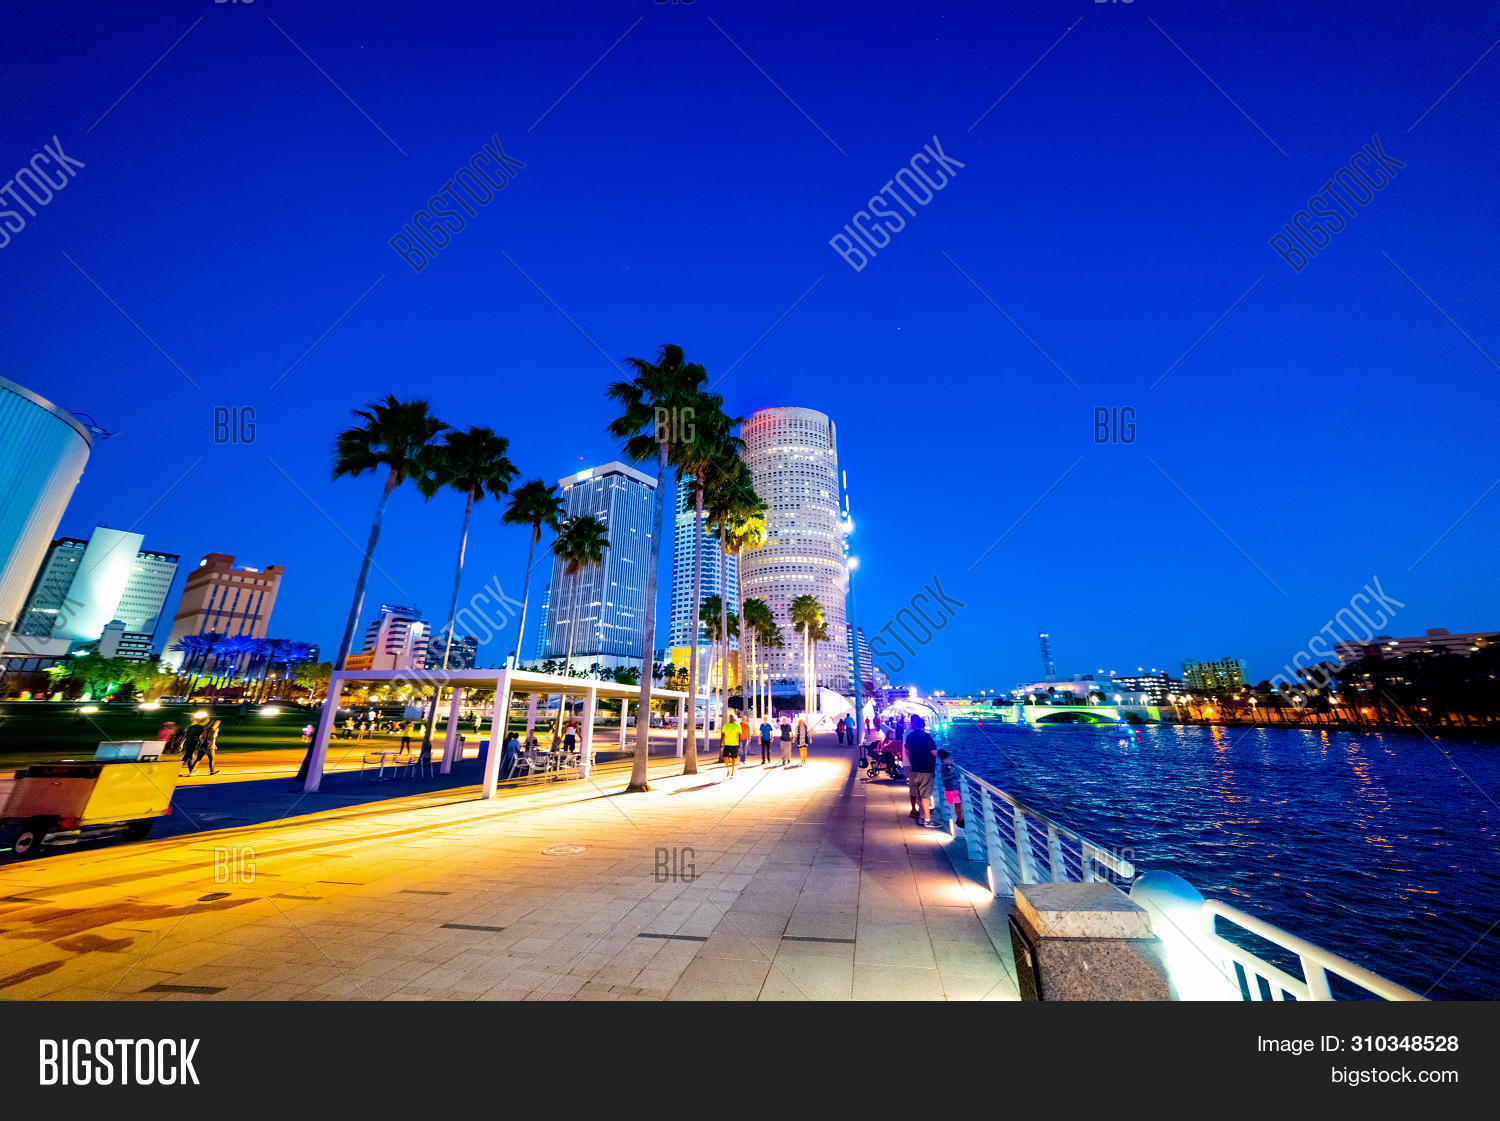 america,architecture,background,bay,beautiful,buildings,built,city,cityscape,cloudy,colorful,colors,commercial,dock,downtown,dusk,evening,florida,green,lights,modern,nature,nautical,night,ocean,outdoor,reflection,riverwalk,romantic,scene,sea,shelter,skyline,skyscraper,street,structure,sunset,tampa,tourism,tourist,tropical,tropics,turquoise,twilight,urban,usa,water,waterfront